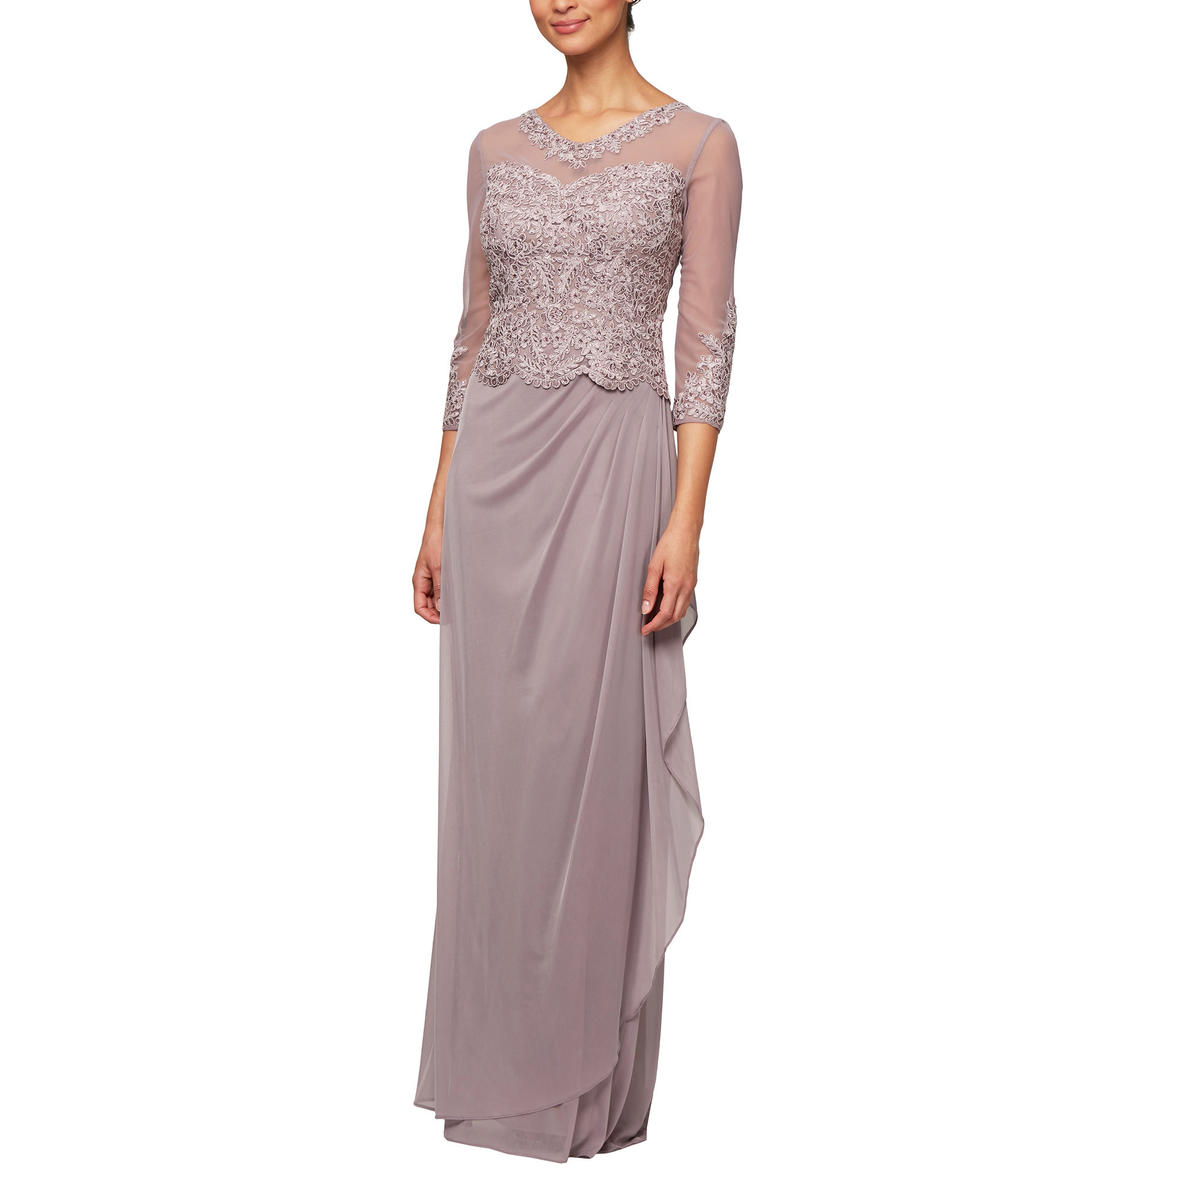 ALEX APPAREL GROUP INC - Long Sleeve Mock Top Chiffon Gown